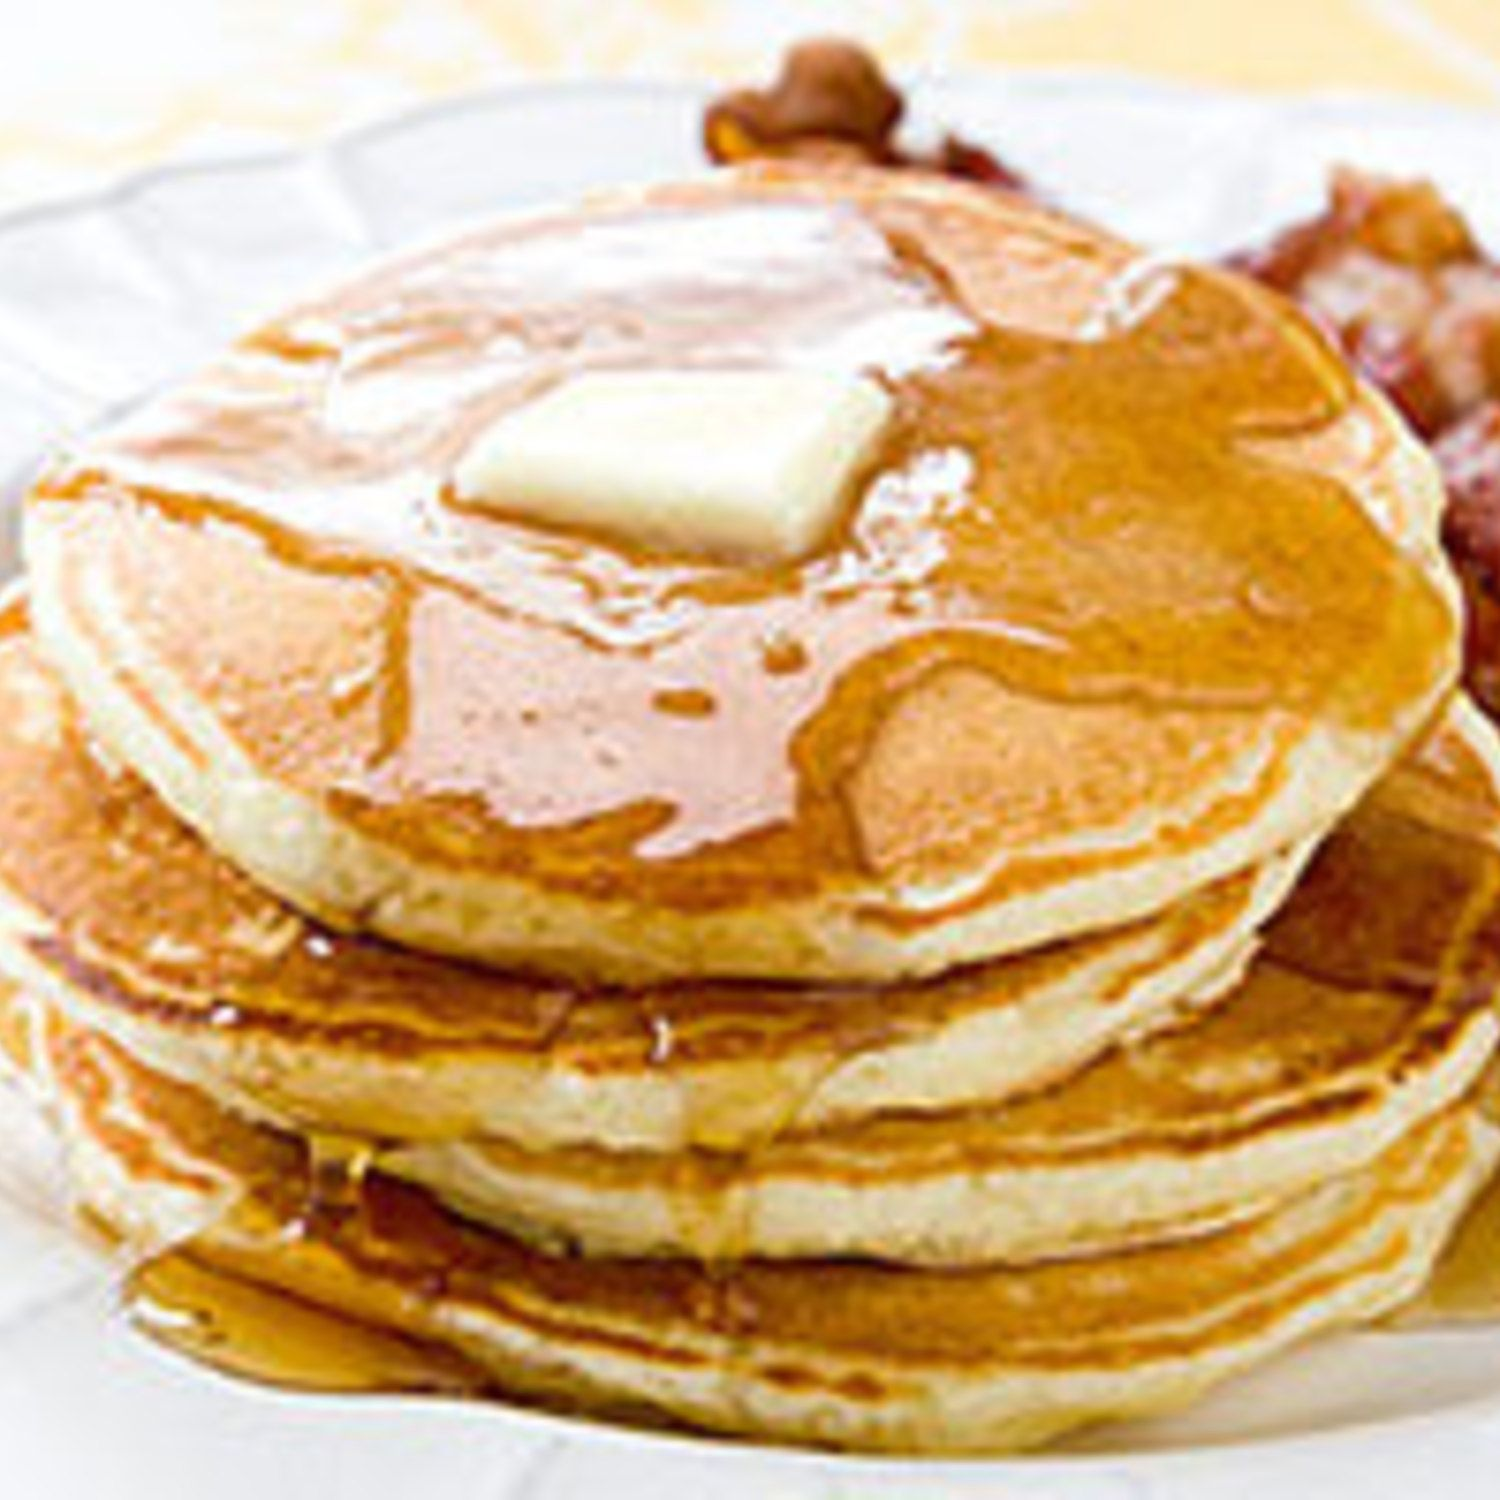 Best Buttermilk Pancakes Cooks Illustrated Recipe Cooks Illustrated Recipes Buttermilk Pancakes Cooks Illustrated